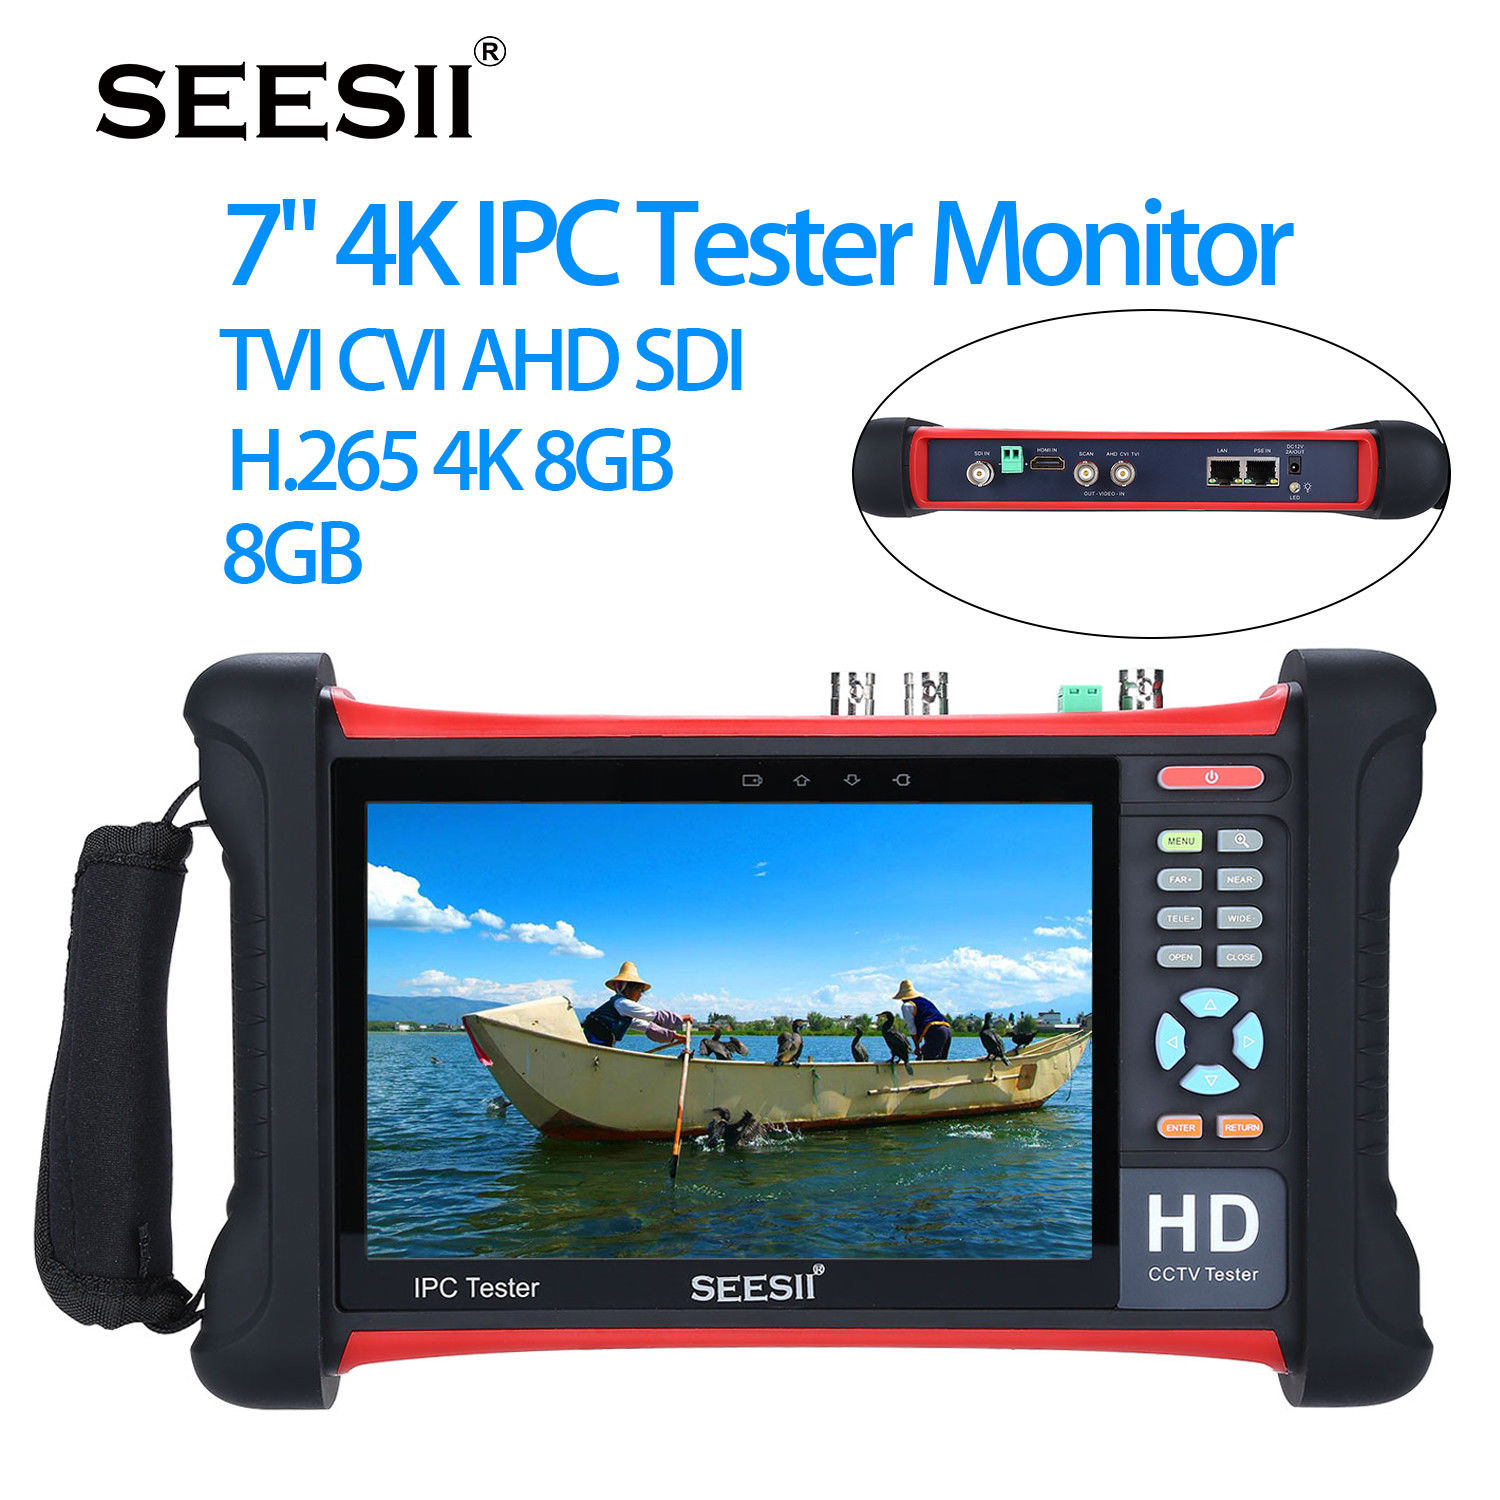 SEESII 7 4K 1080P IPC Camera CCTV Retina Touch Screen Tester Monitor Wifi TVI CVI AHD SDI CVBS IP Discovery Analog 1920x1200 ipc9300 ipc wifi ahd tvi cvi analog 4 3 touchscreen cctv tester for ip analog camera 1080p bnc network cable tester wifi 8gb